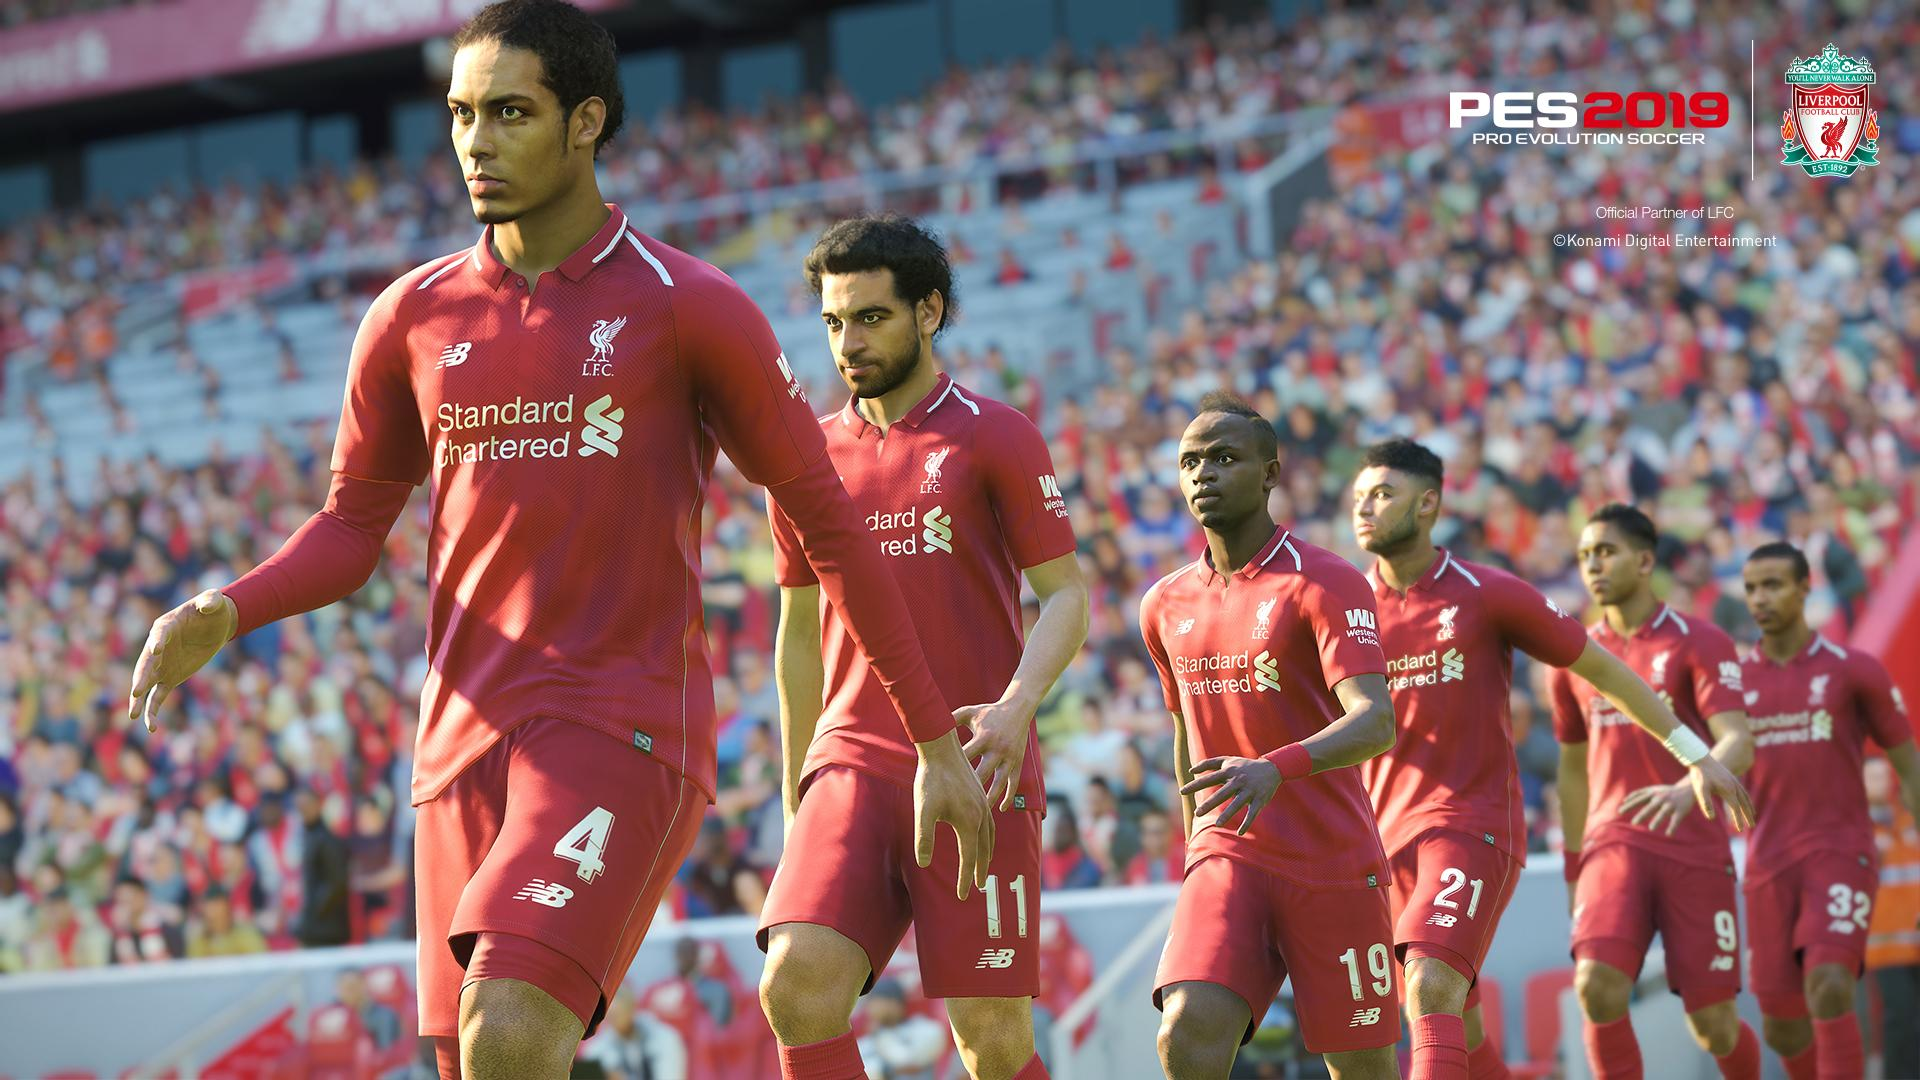 Liverpool are one of the licenced teams in the game